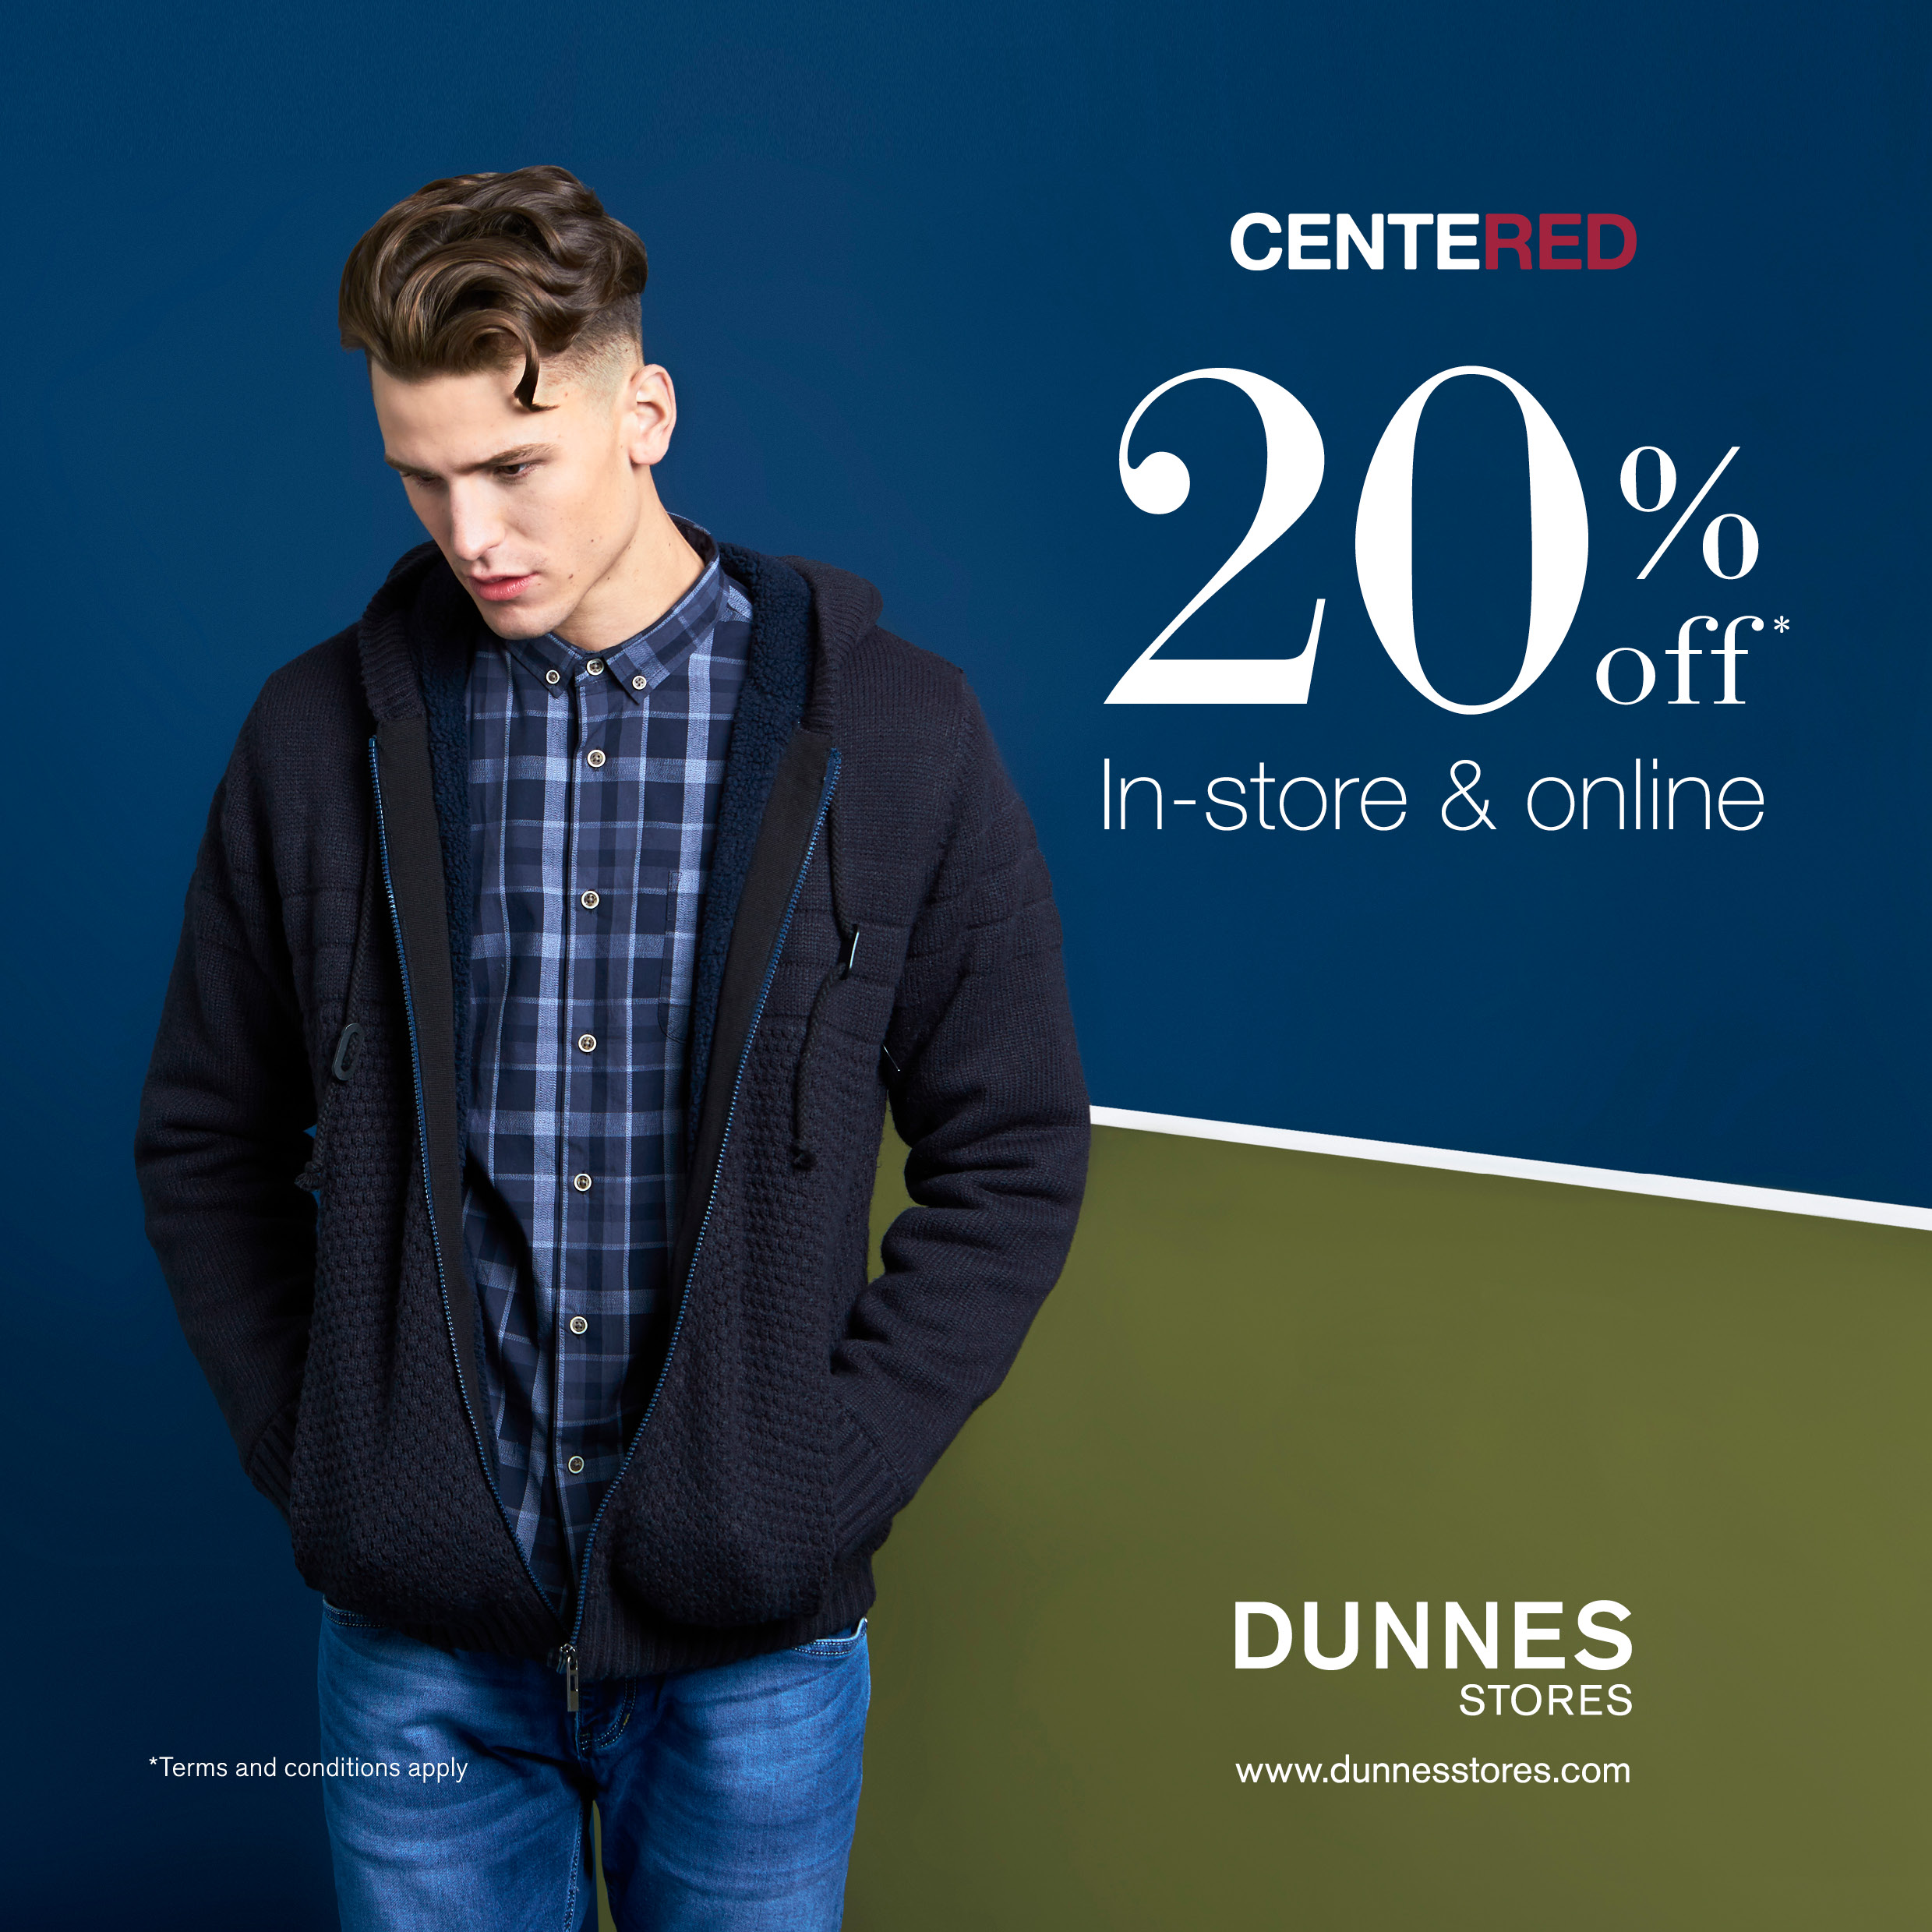 Dunnes Stores 20% Off menswear brand Centered